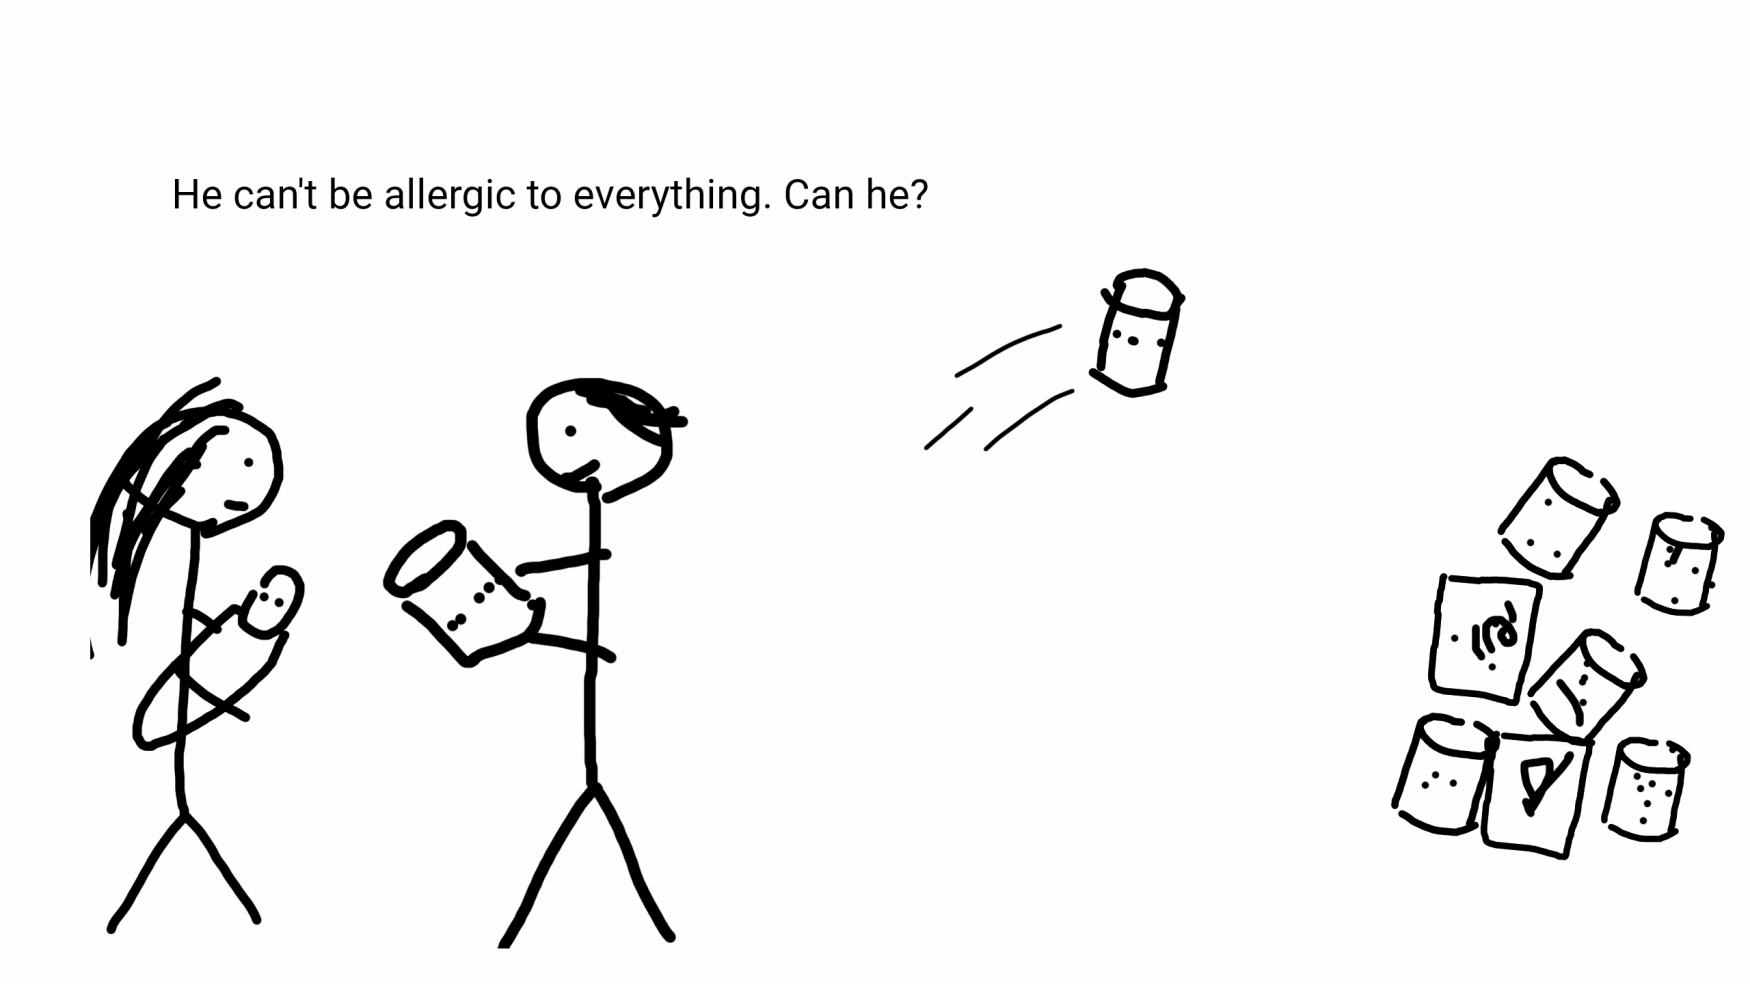 can't be allergic to everything, can he?